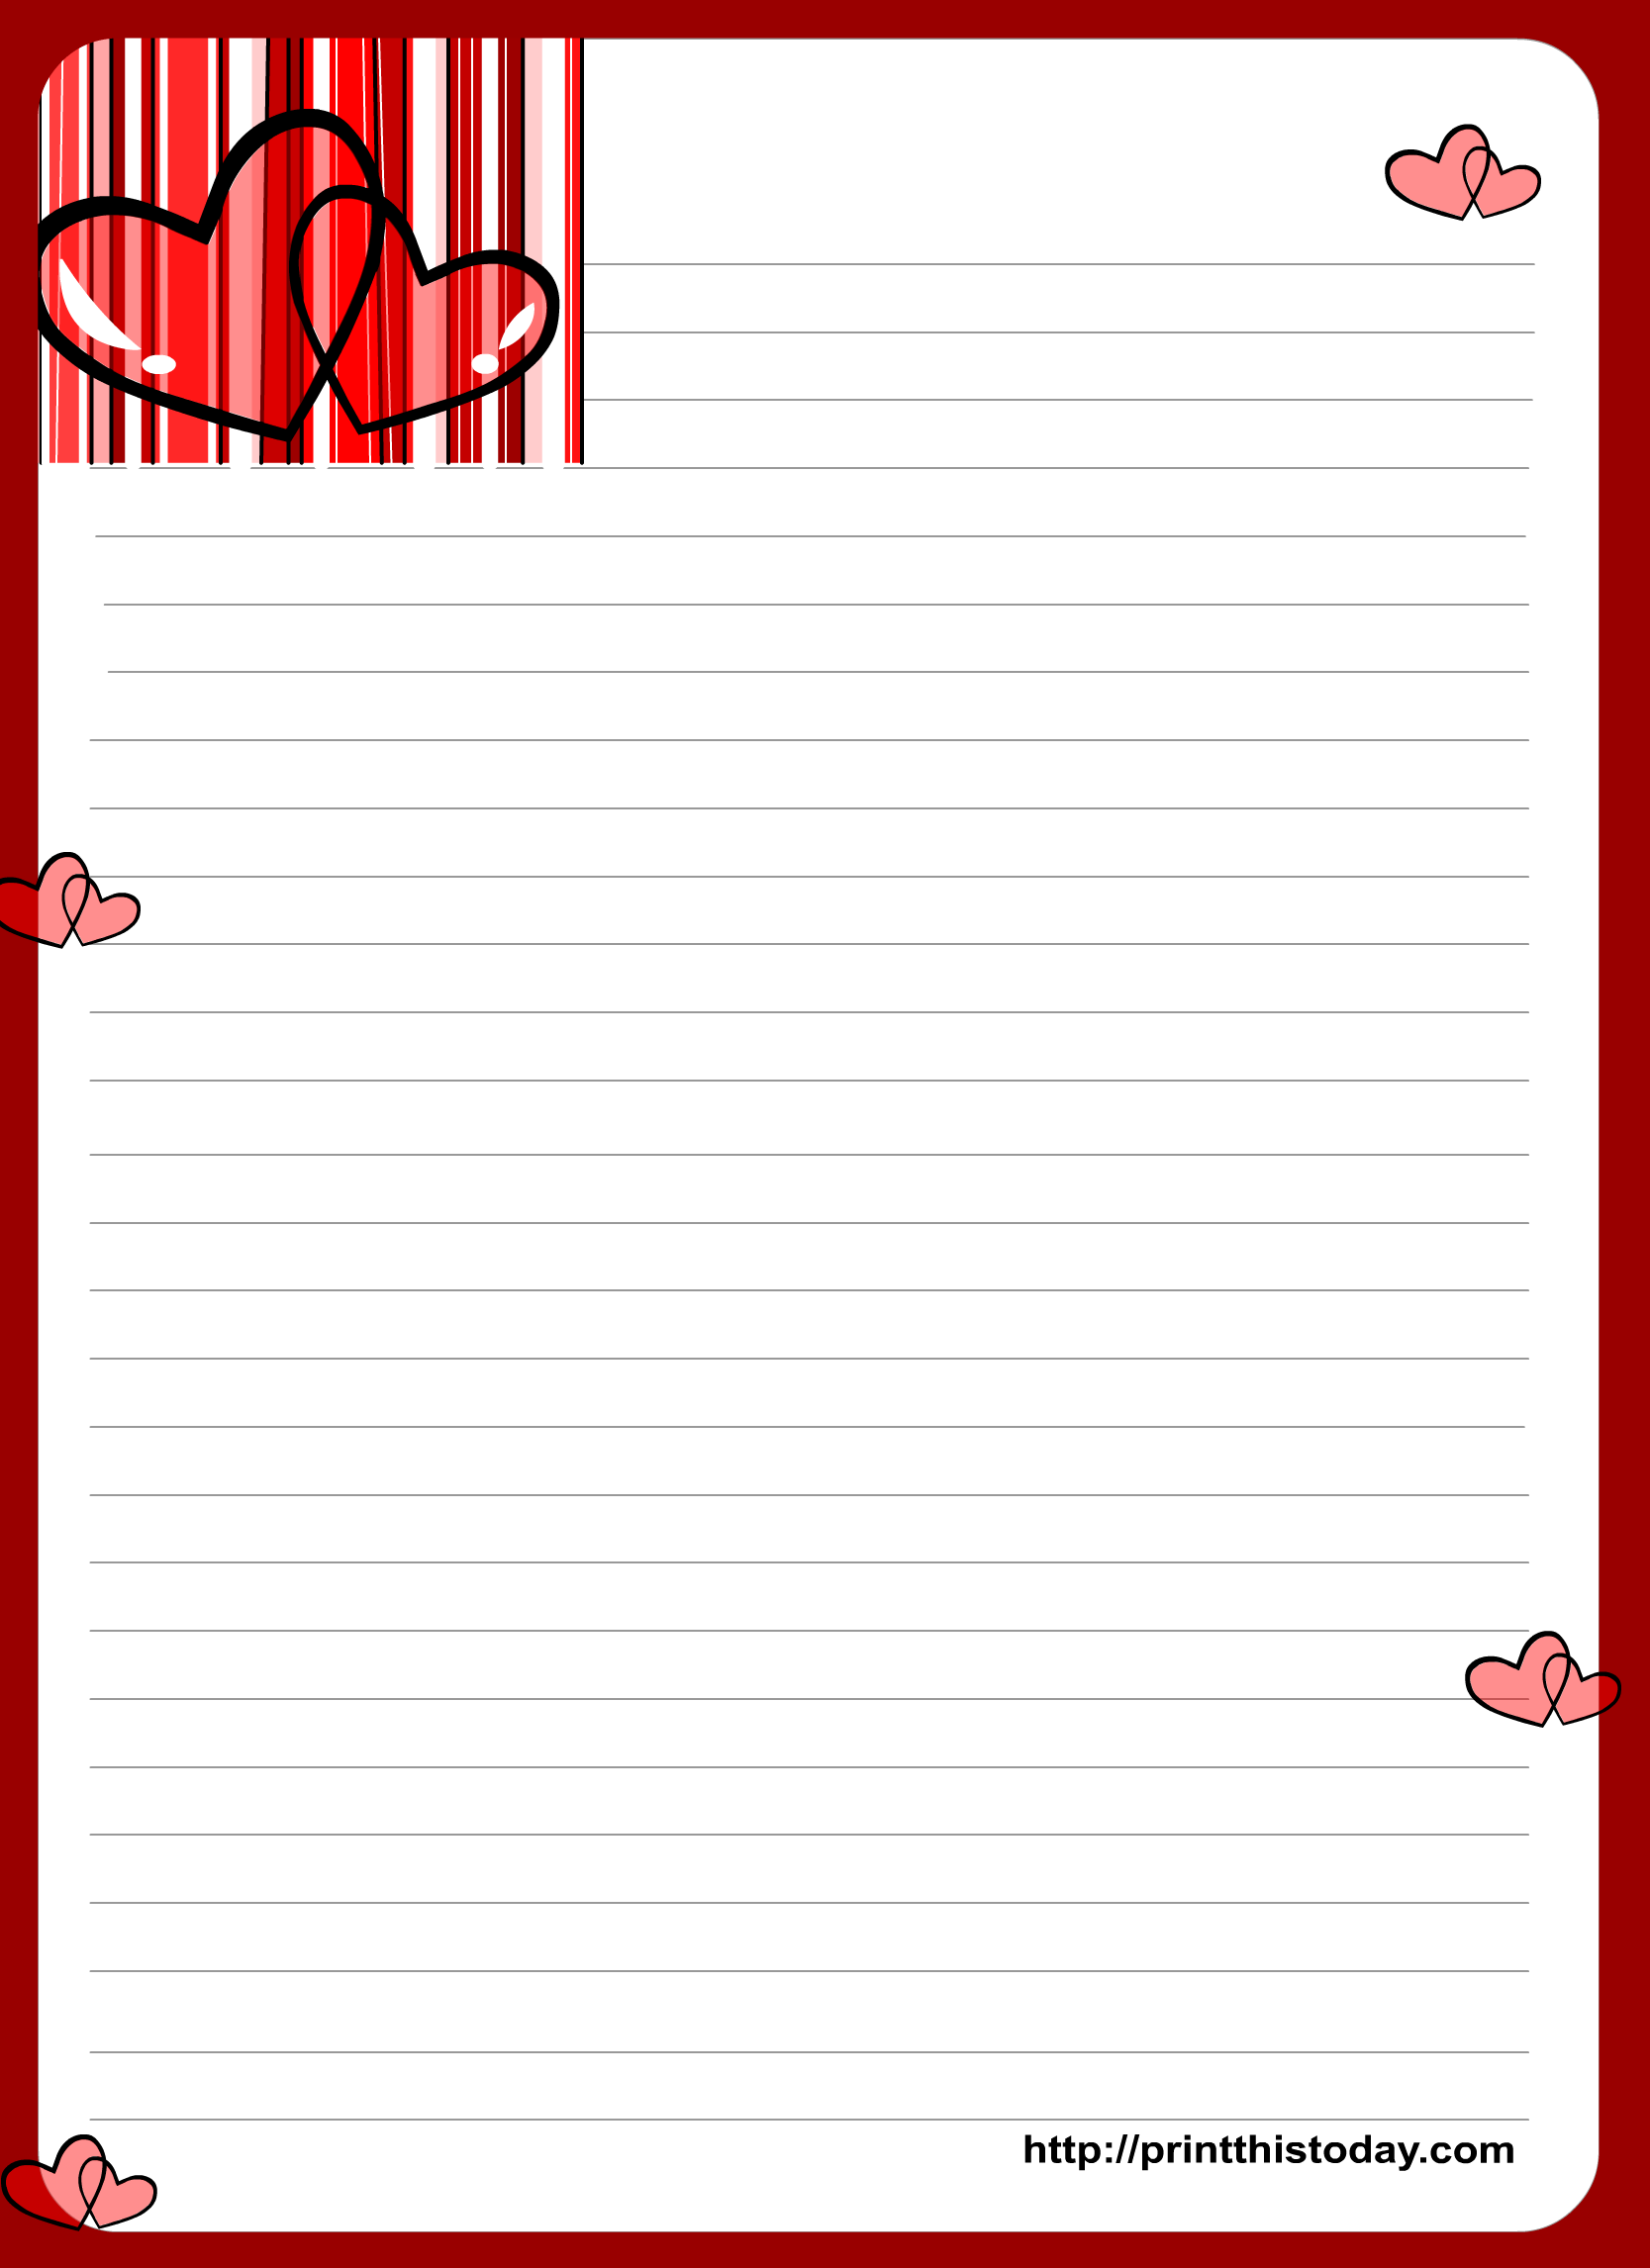 My love is forever Love letter Pad